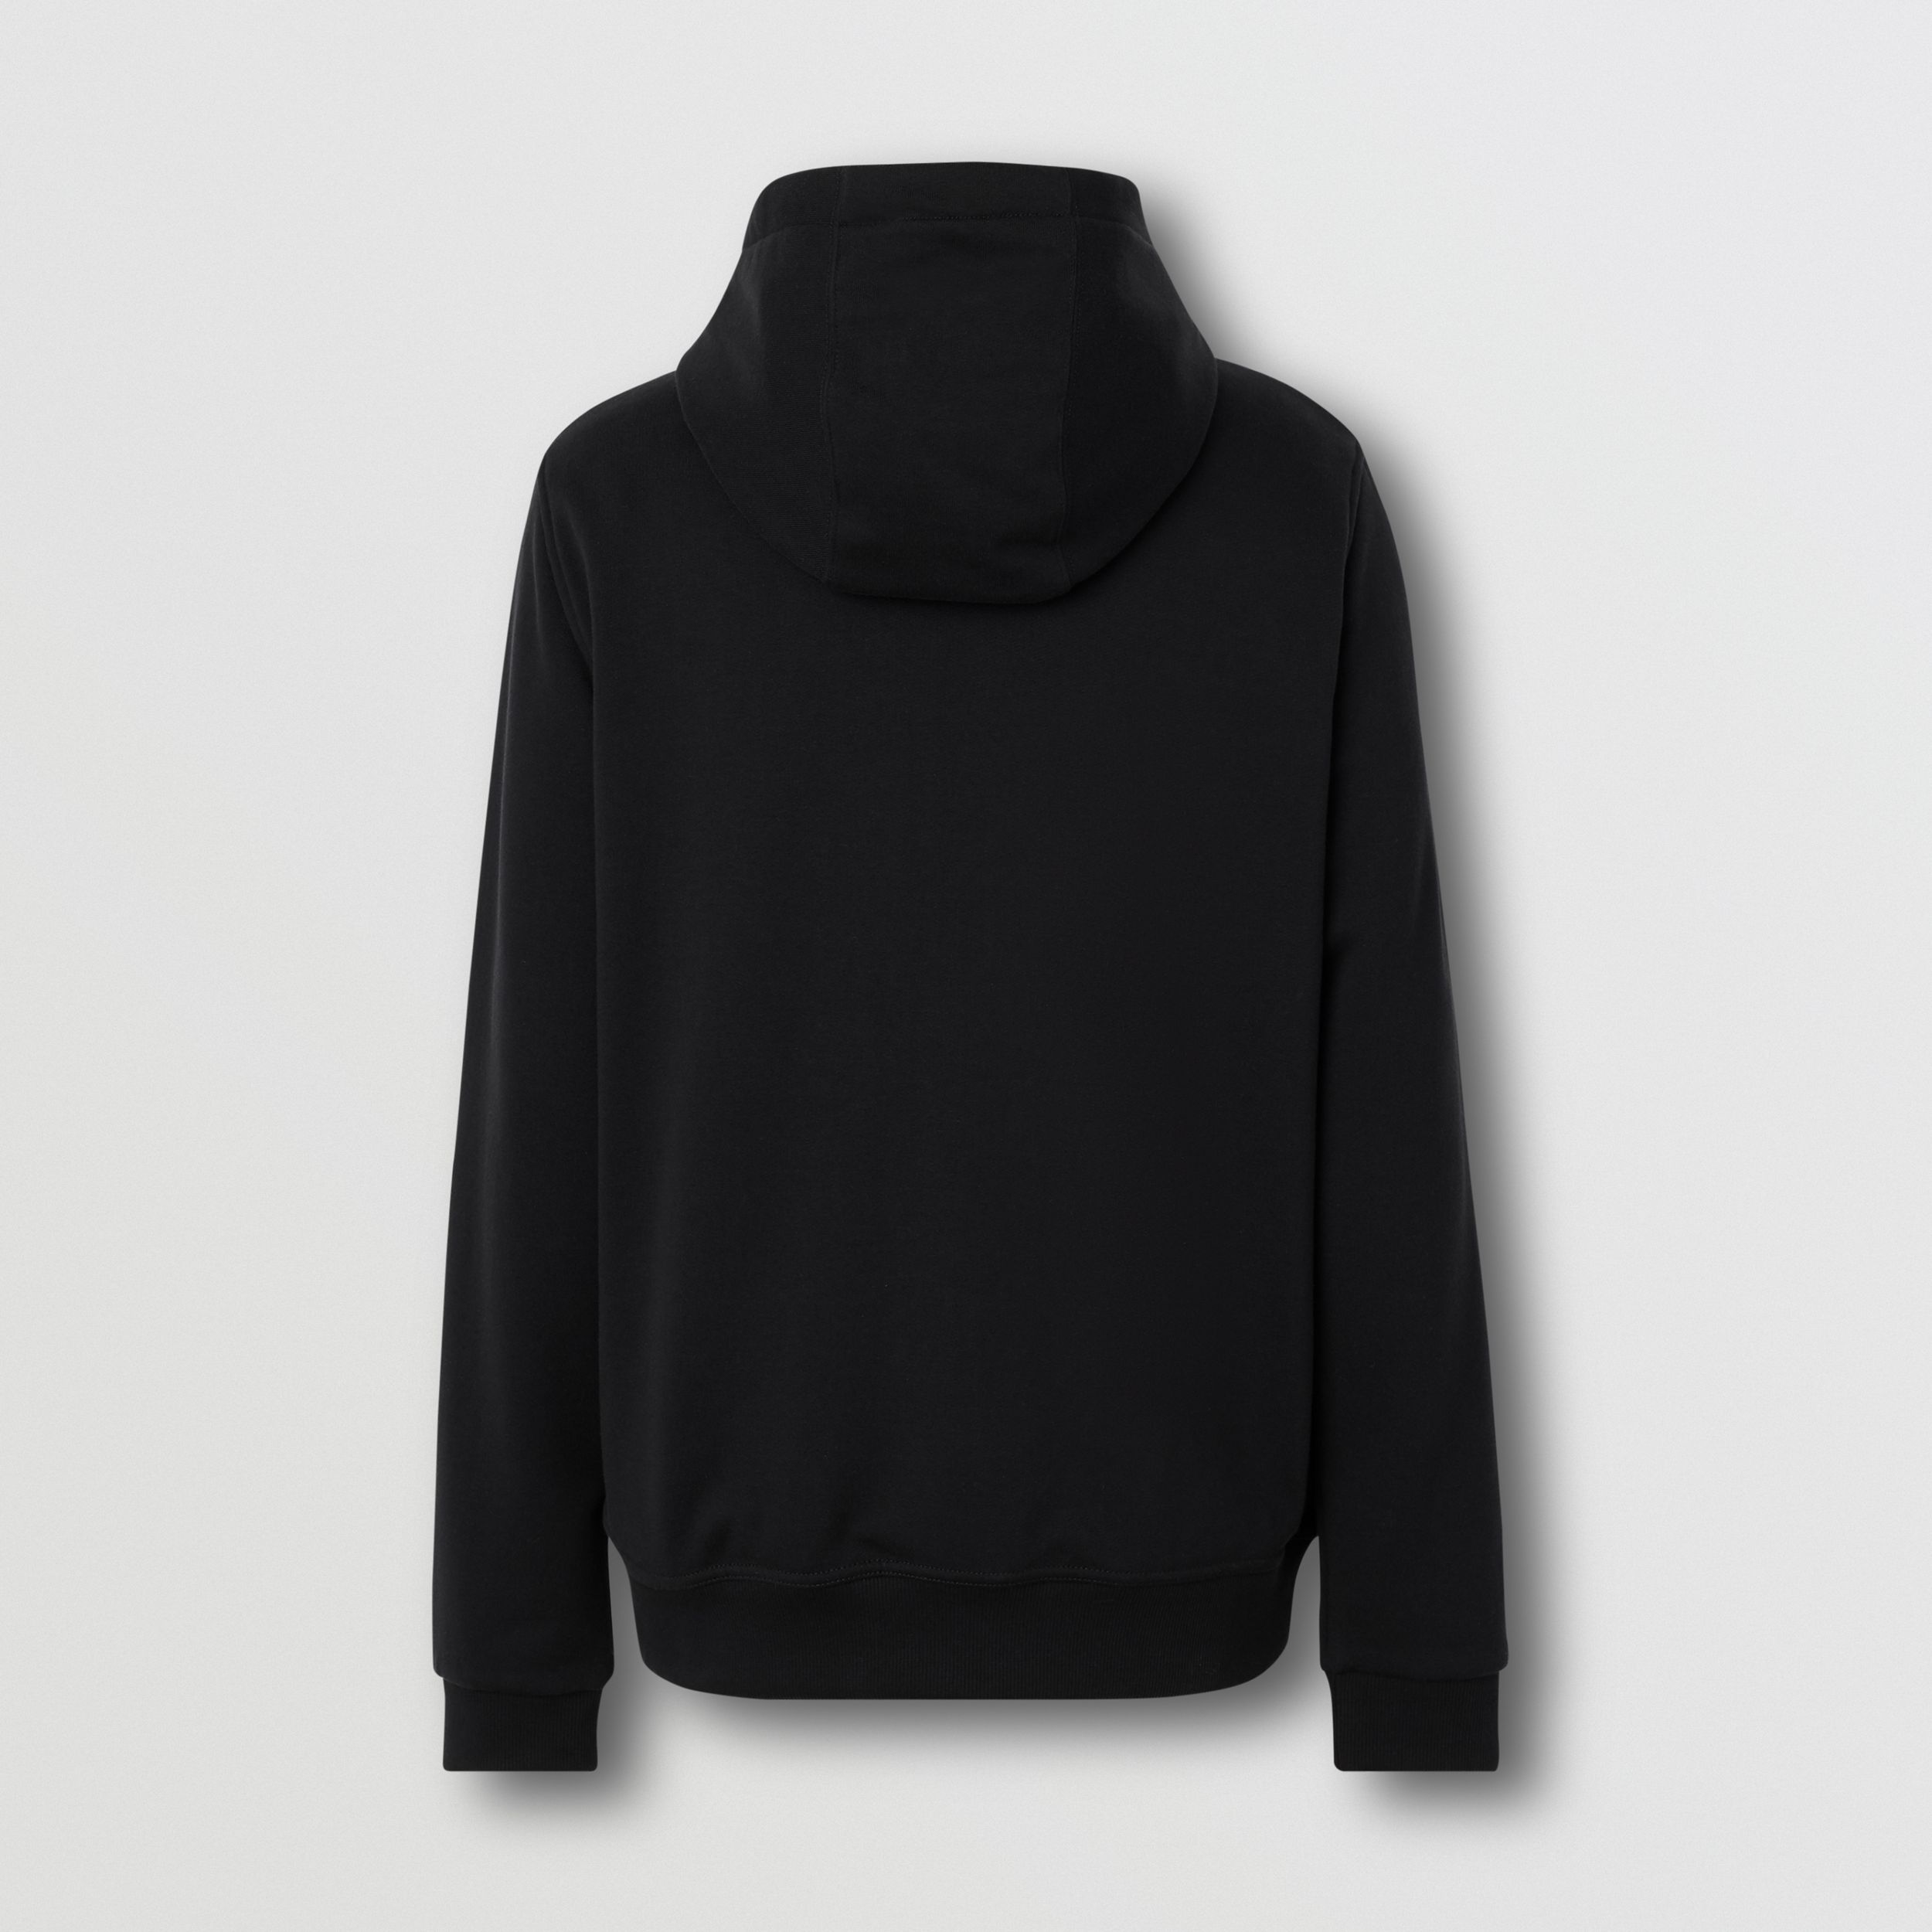 Logo Appliqué Cotton Hooded Top in Black - Men | Burberry - 2